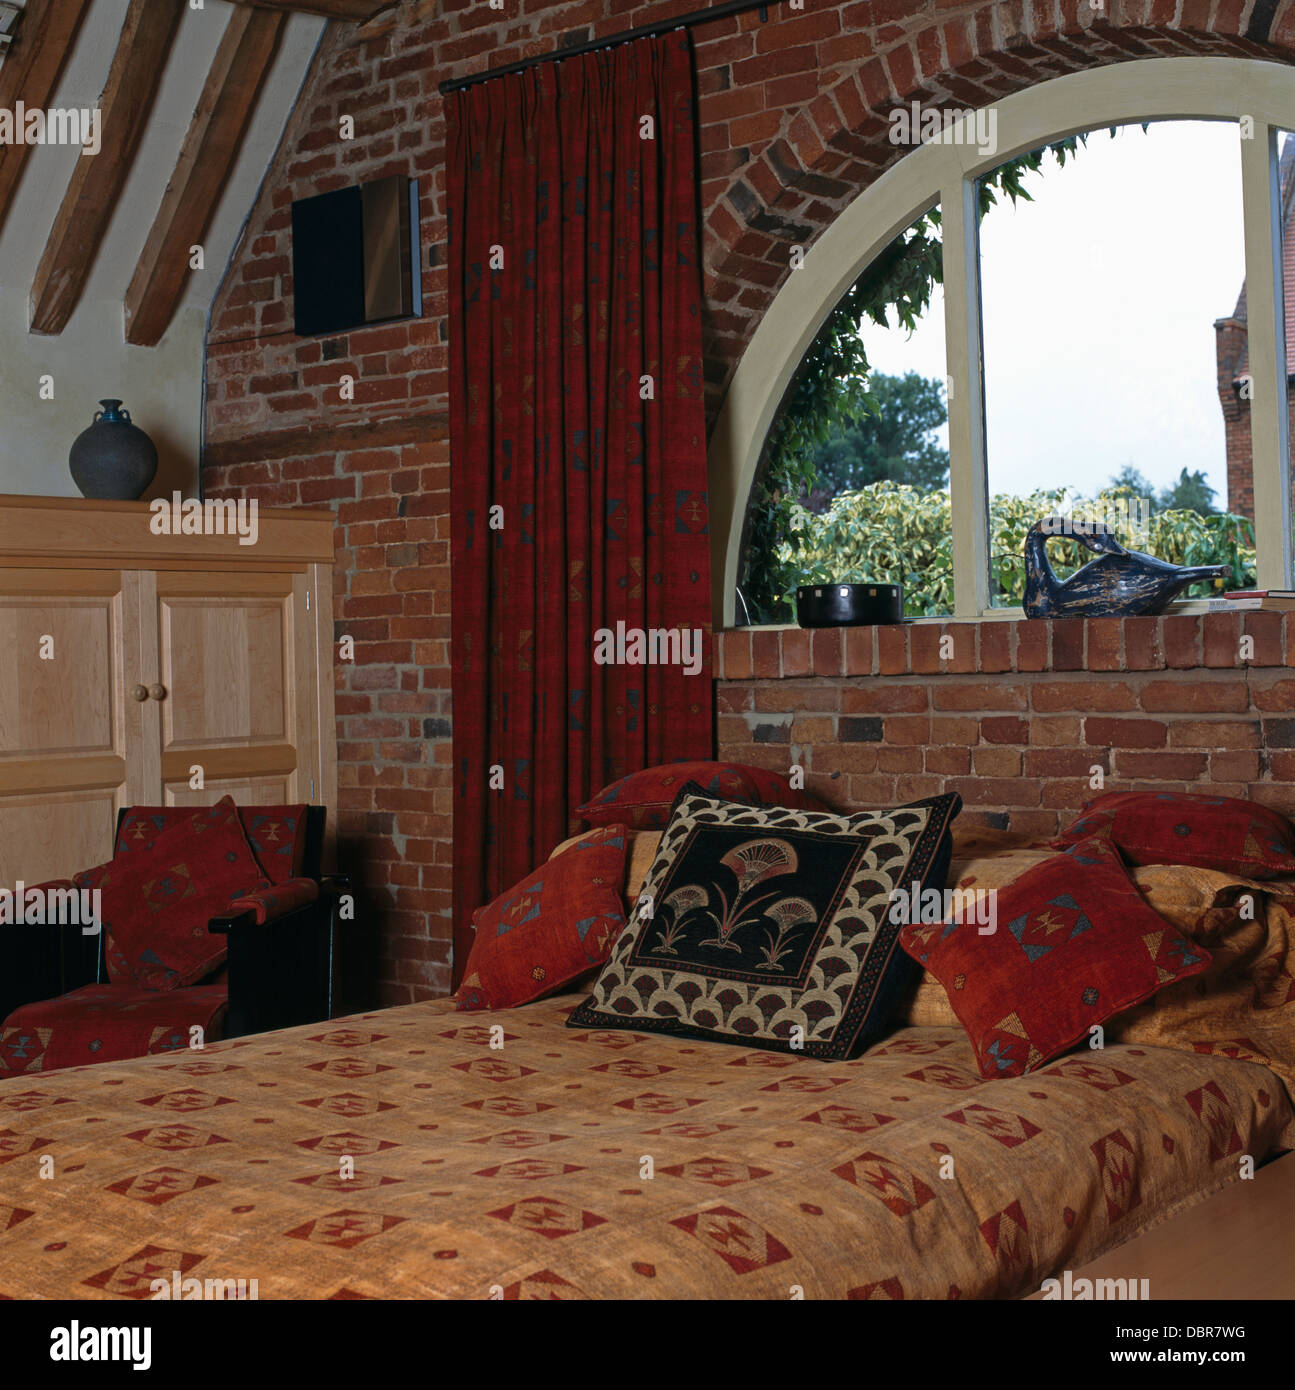 Curtains for half moon windows - Red Curtain And Halfmoon Window Above Bed With Patterned Cushions And Duvet In Barn